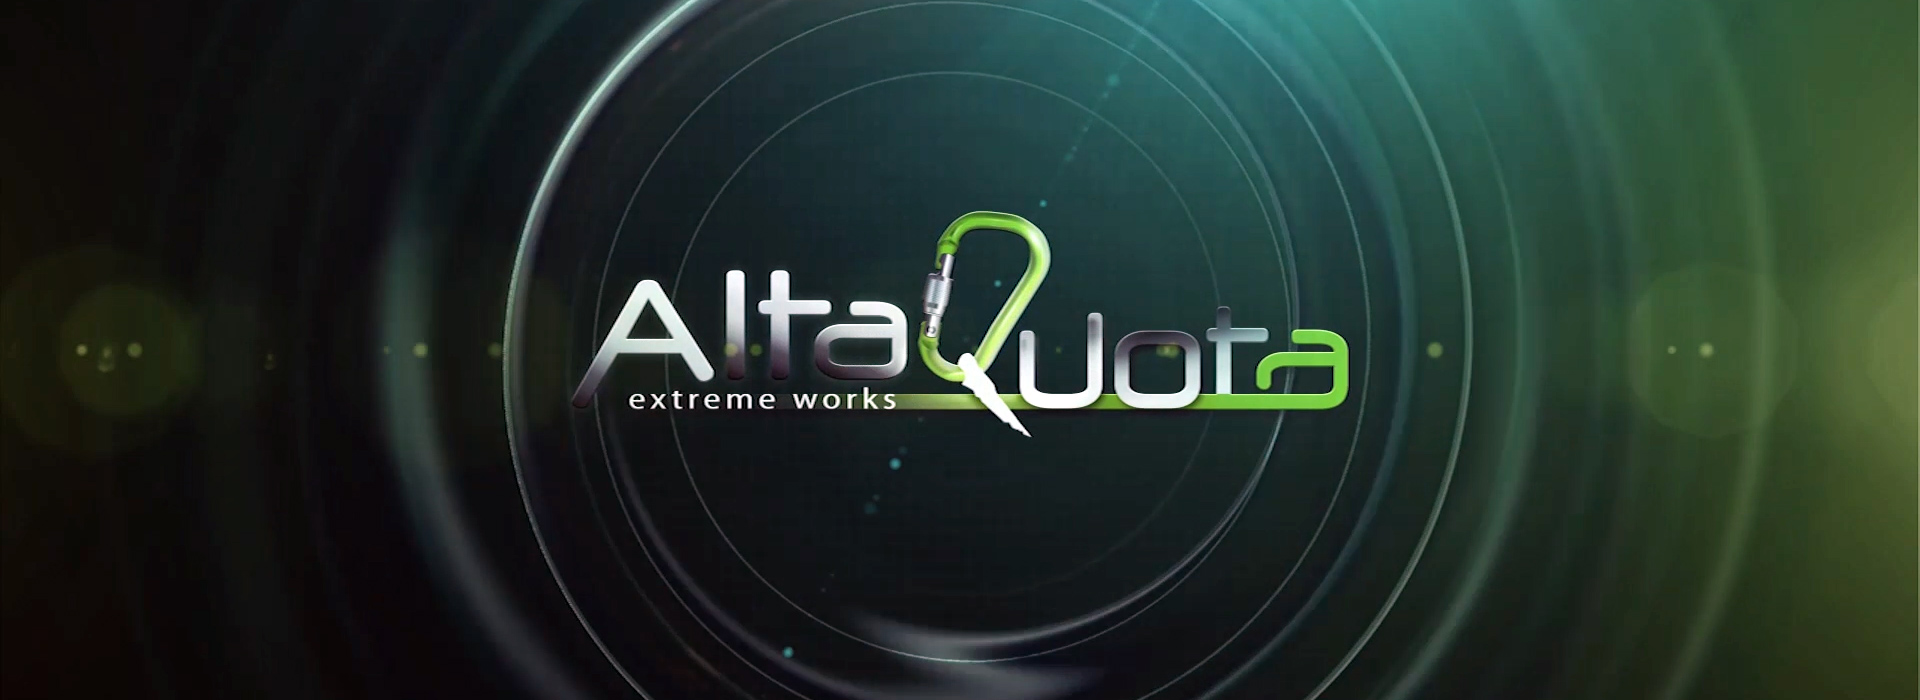 Alta Quota Extreme Works srl